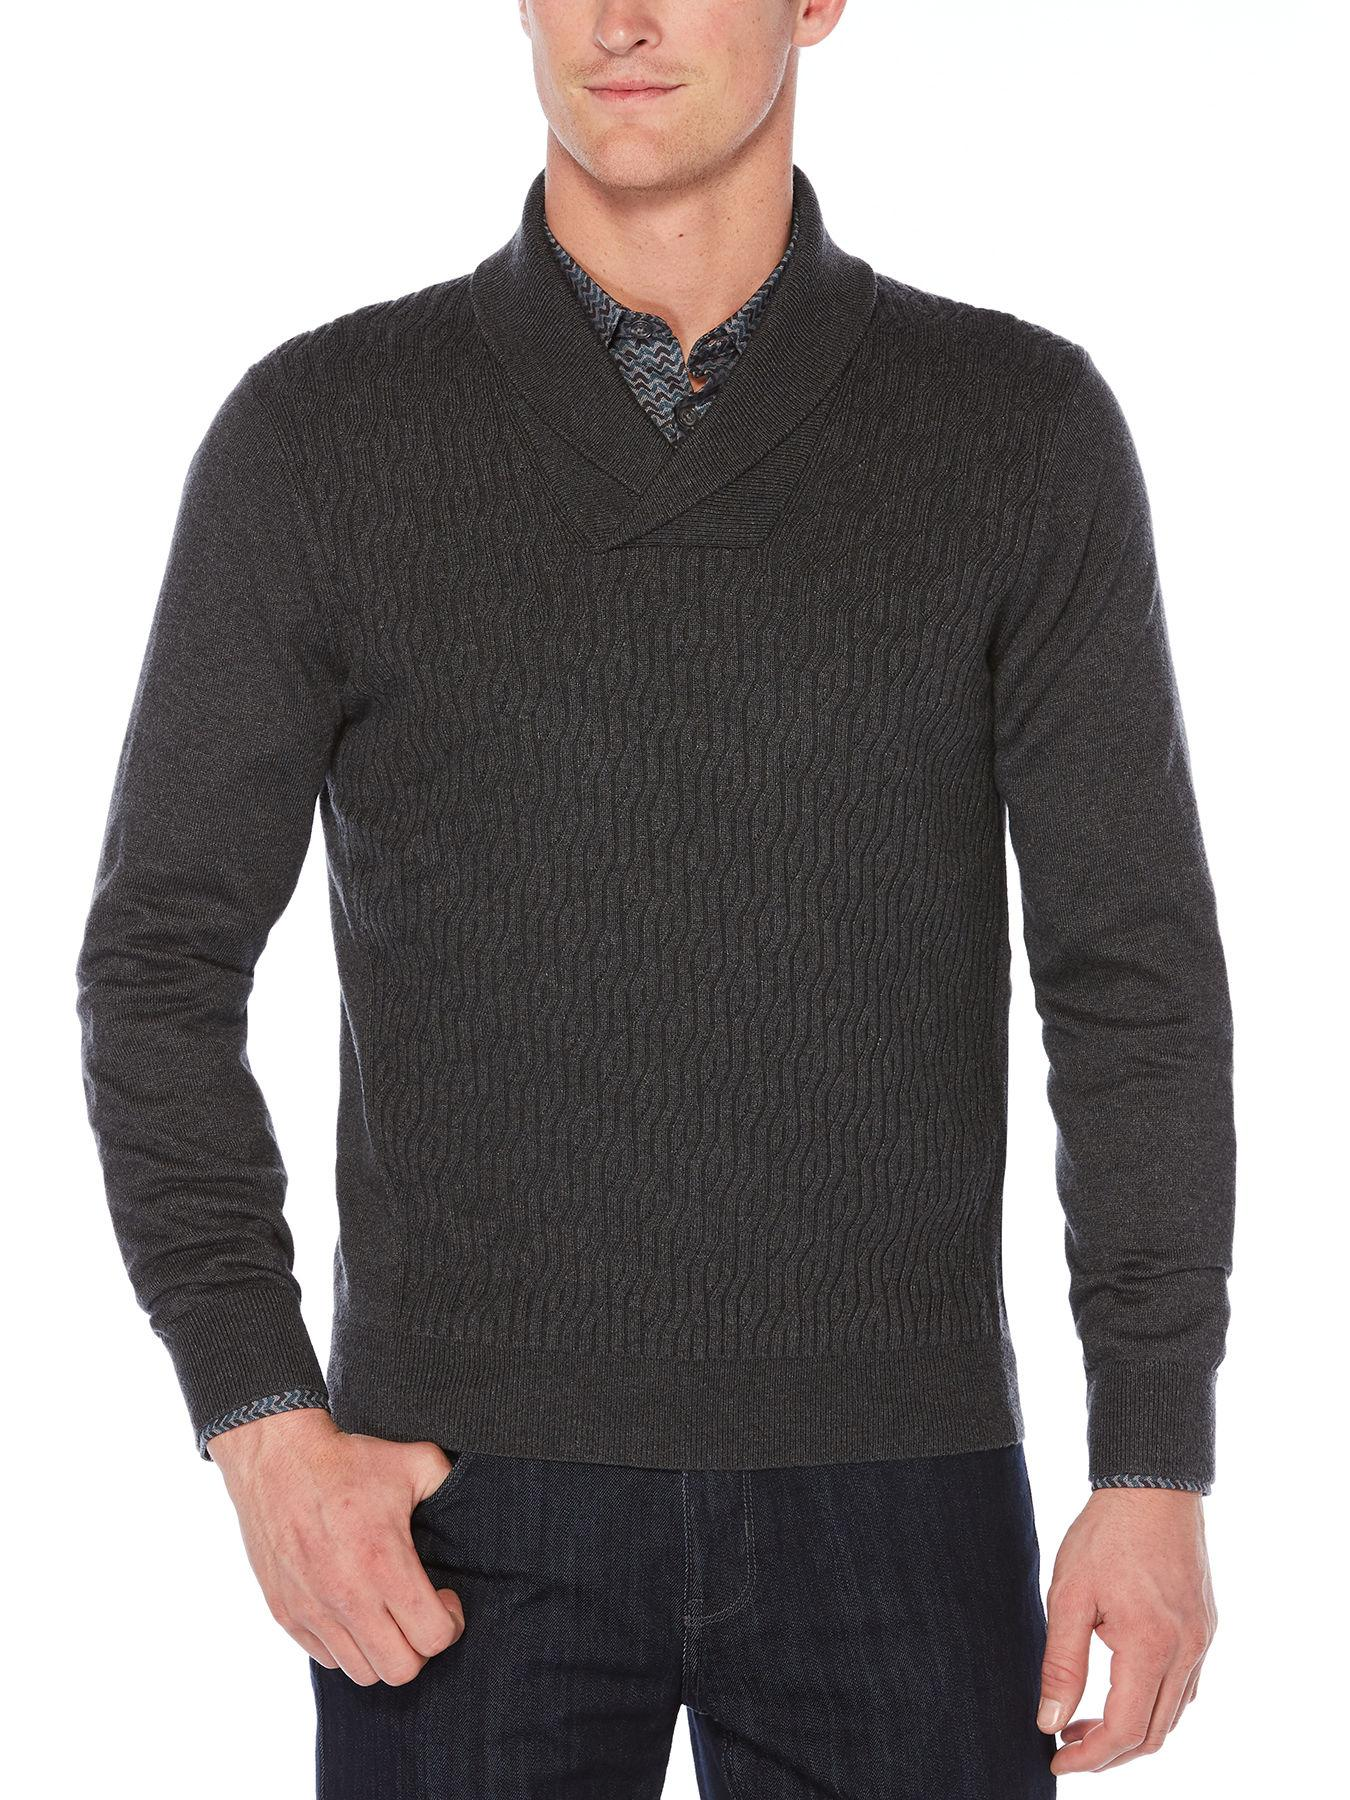 Lyst - Perry Ellis Big   Tall Cable Shawl Pullover Cardigan in Gray ... f26c1c5d5